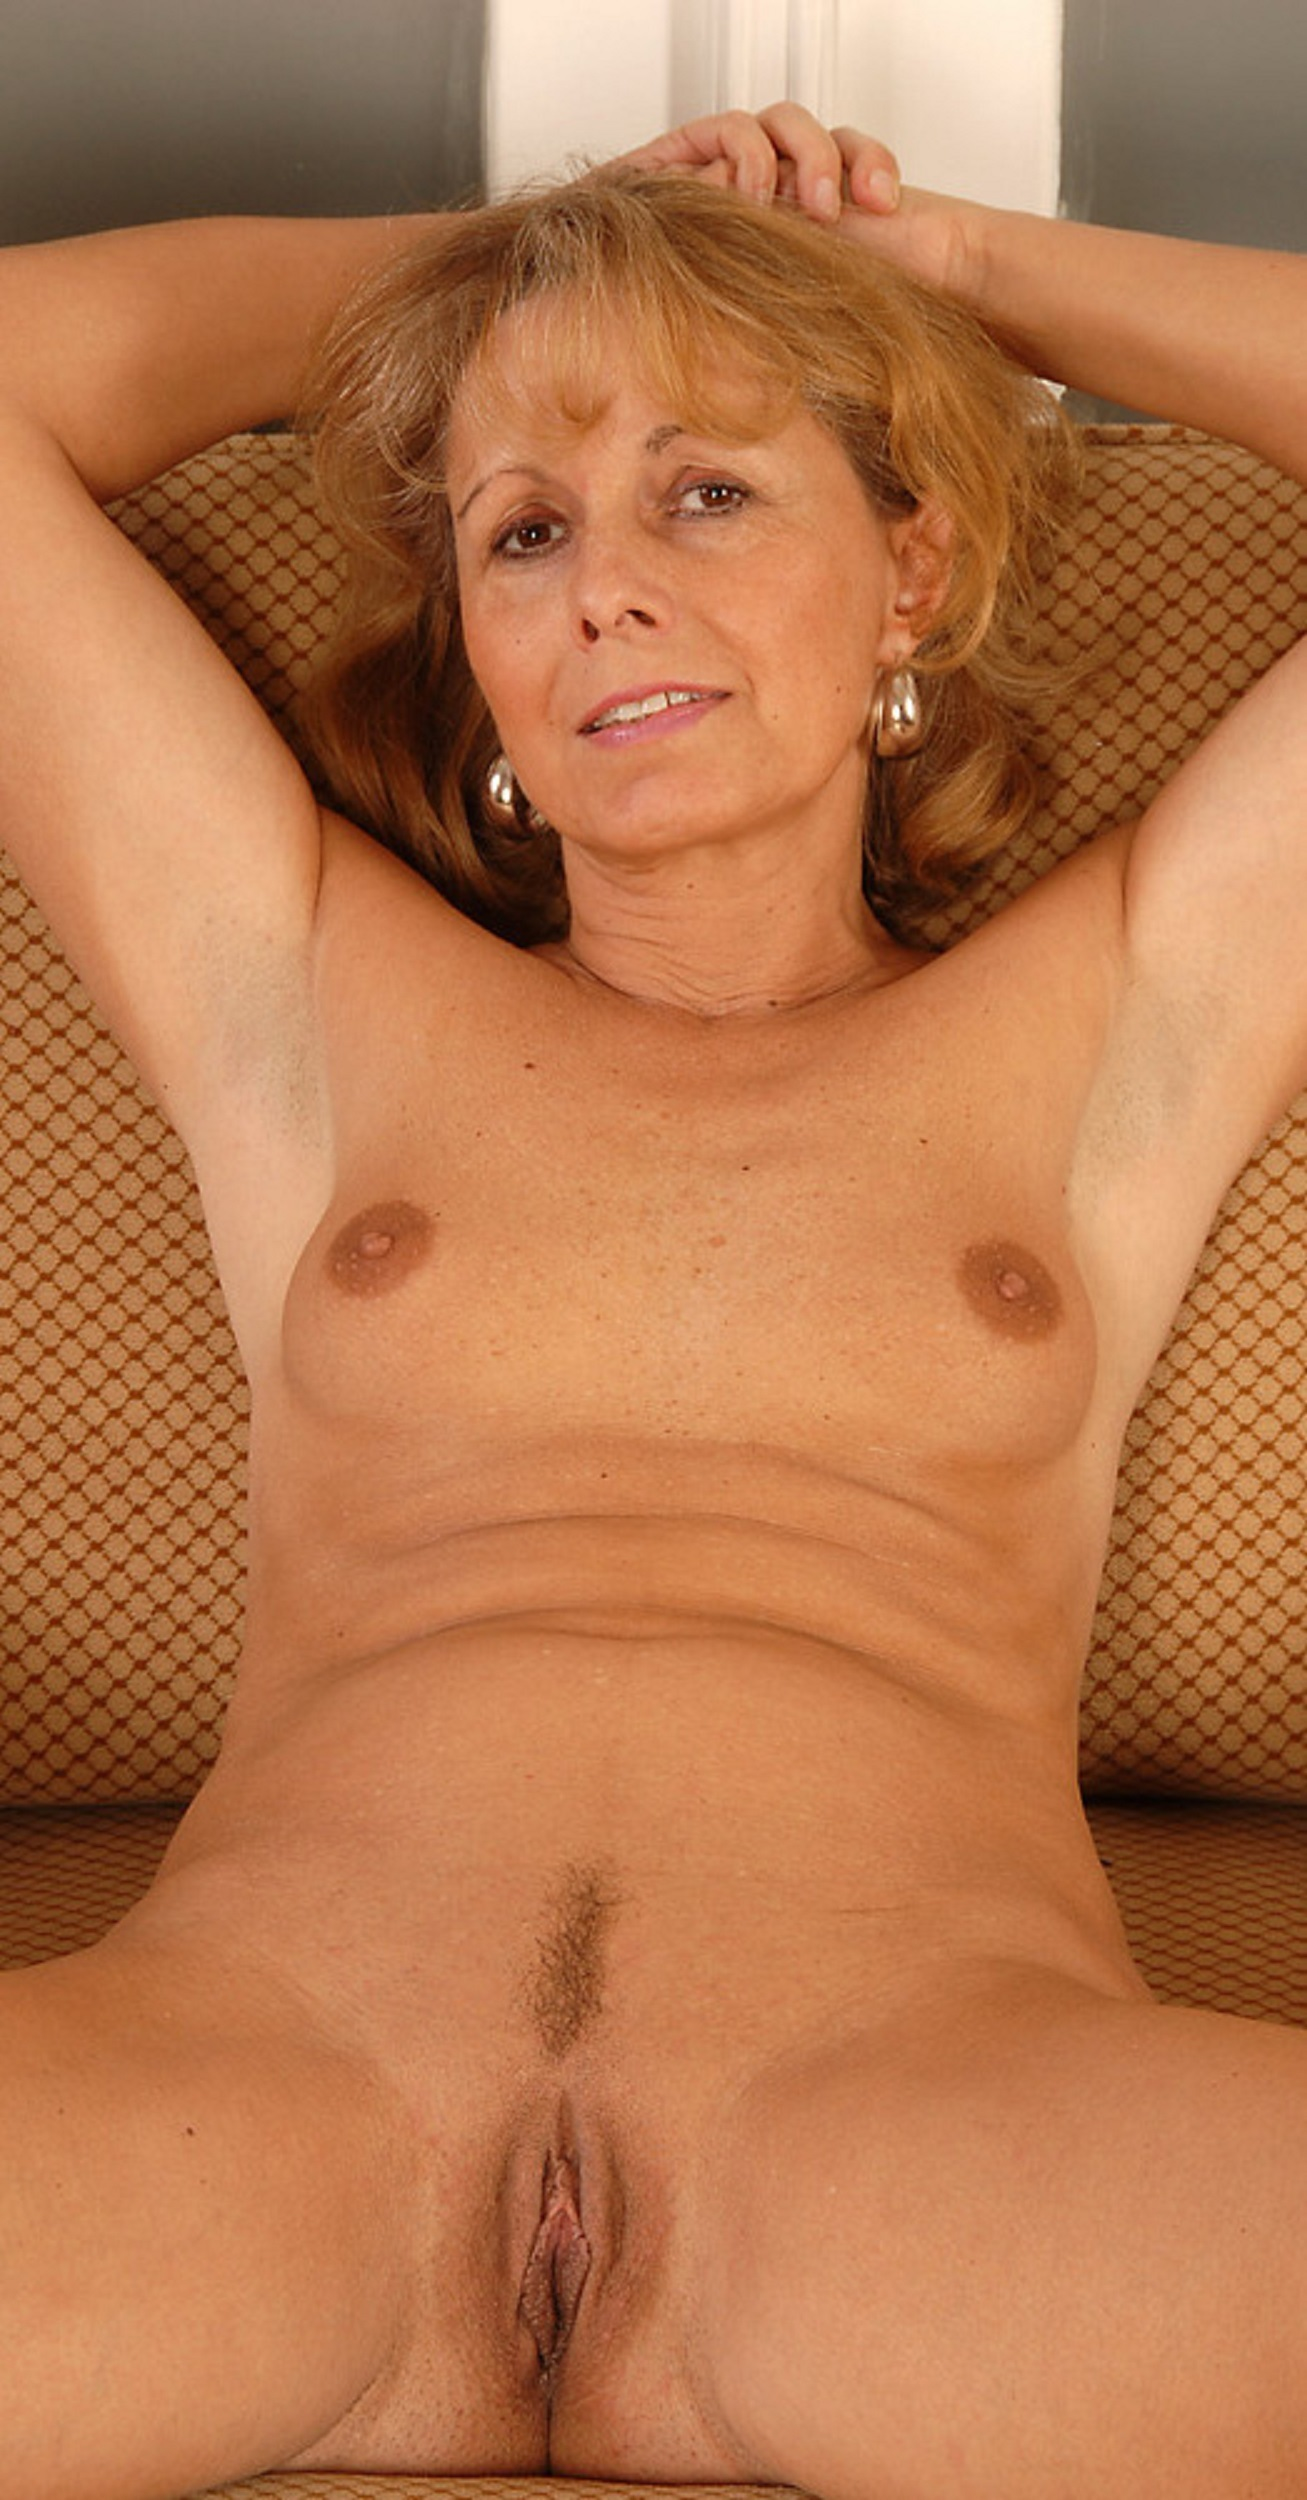 Flat Chested Older Women